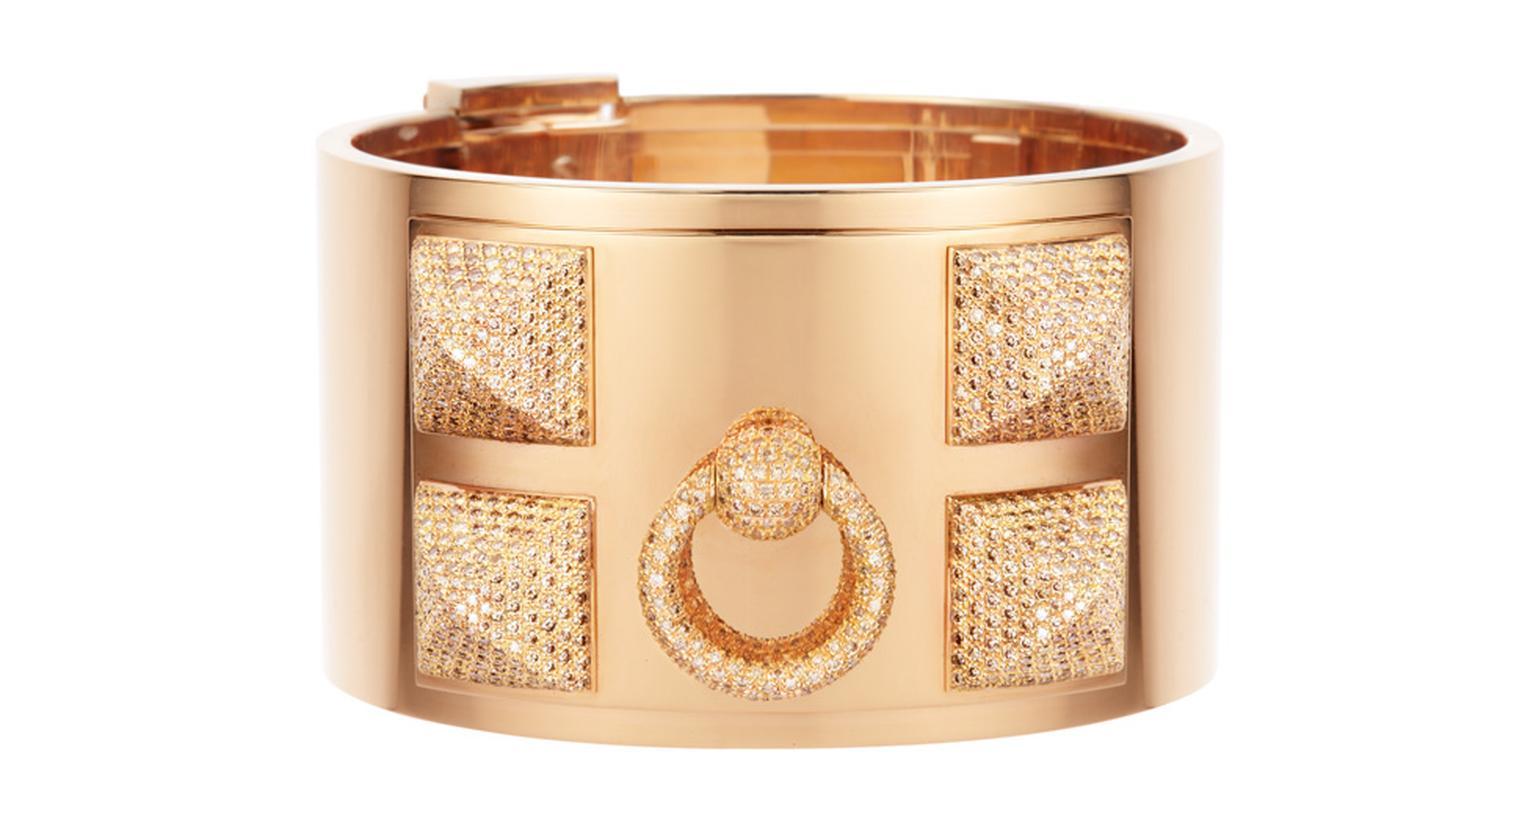 Hermès Collier de Chien gold and diamond cuff